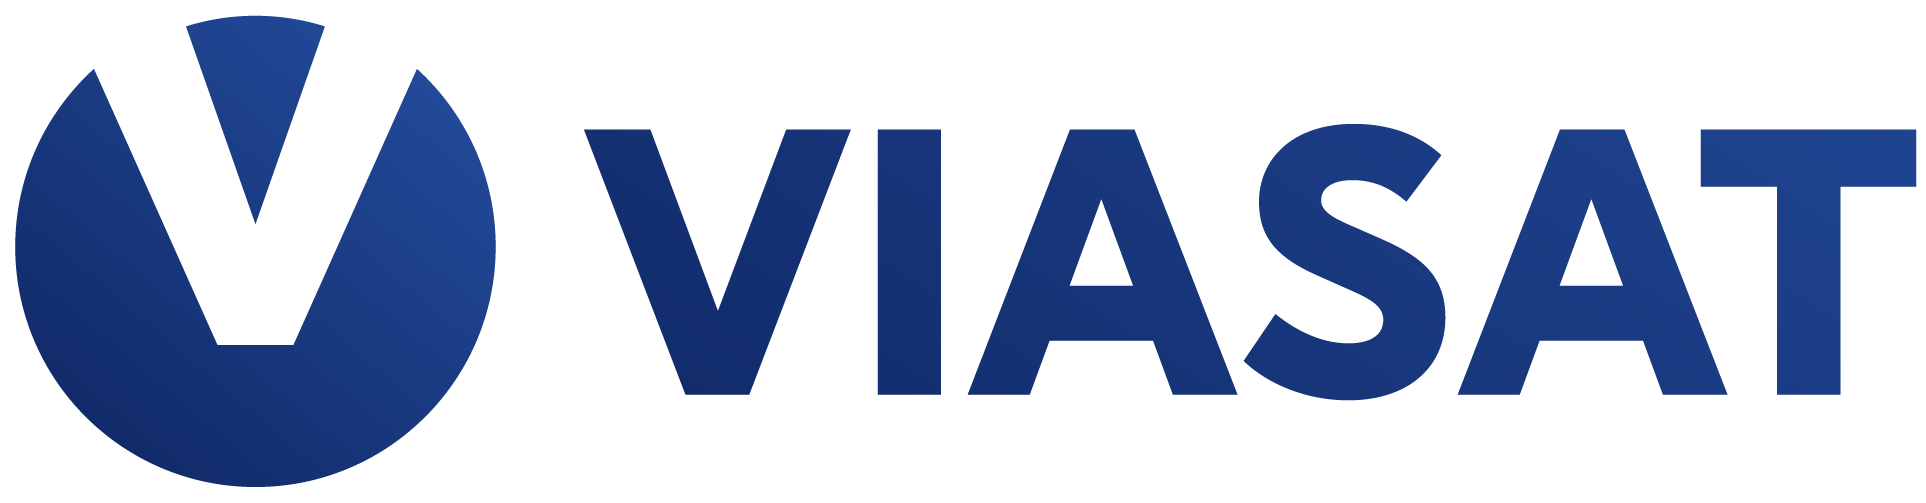 viasat/connecttv